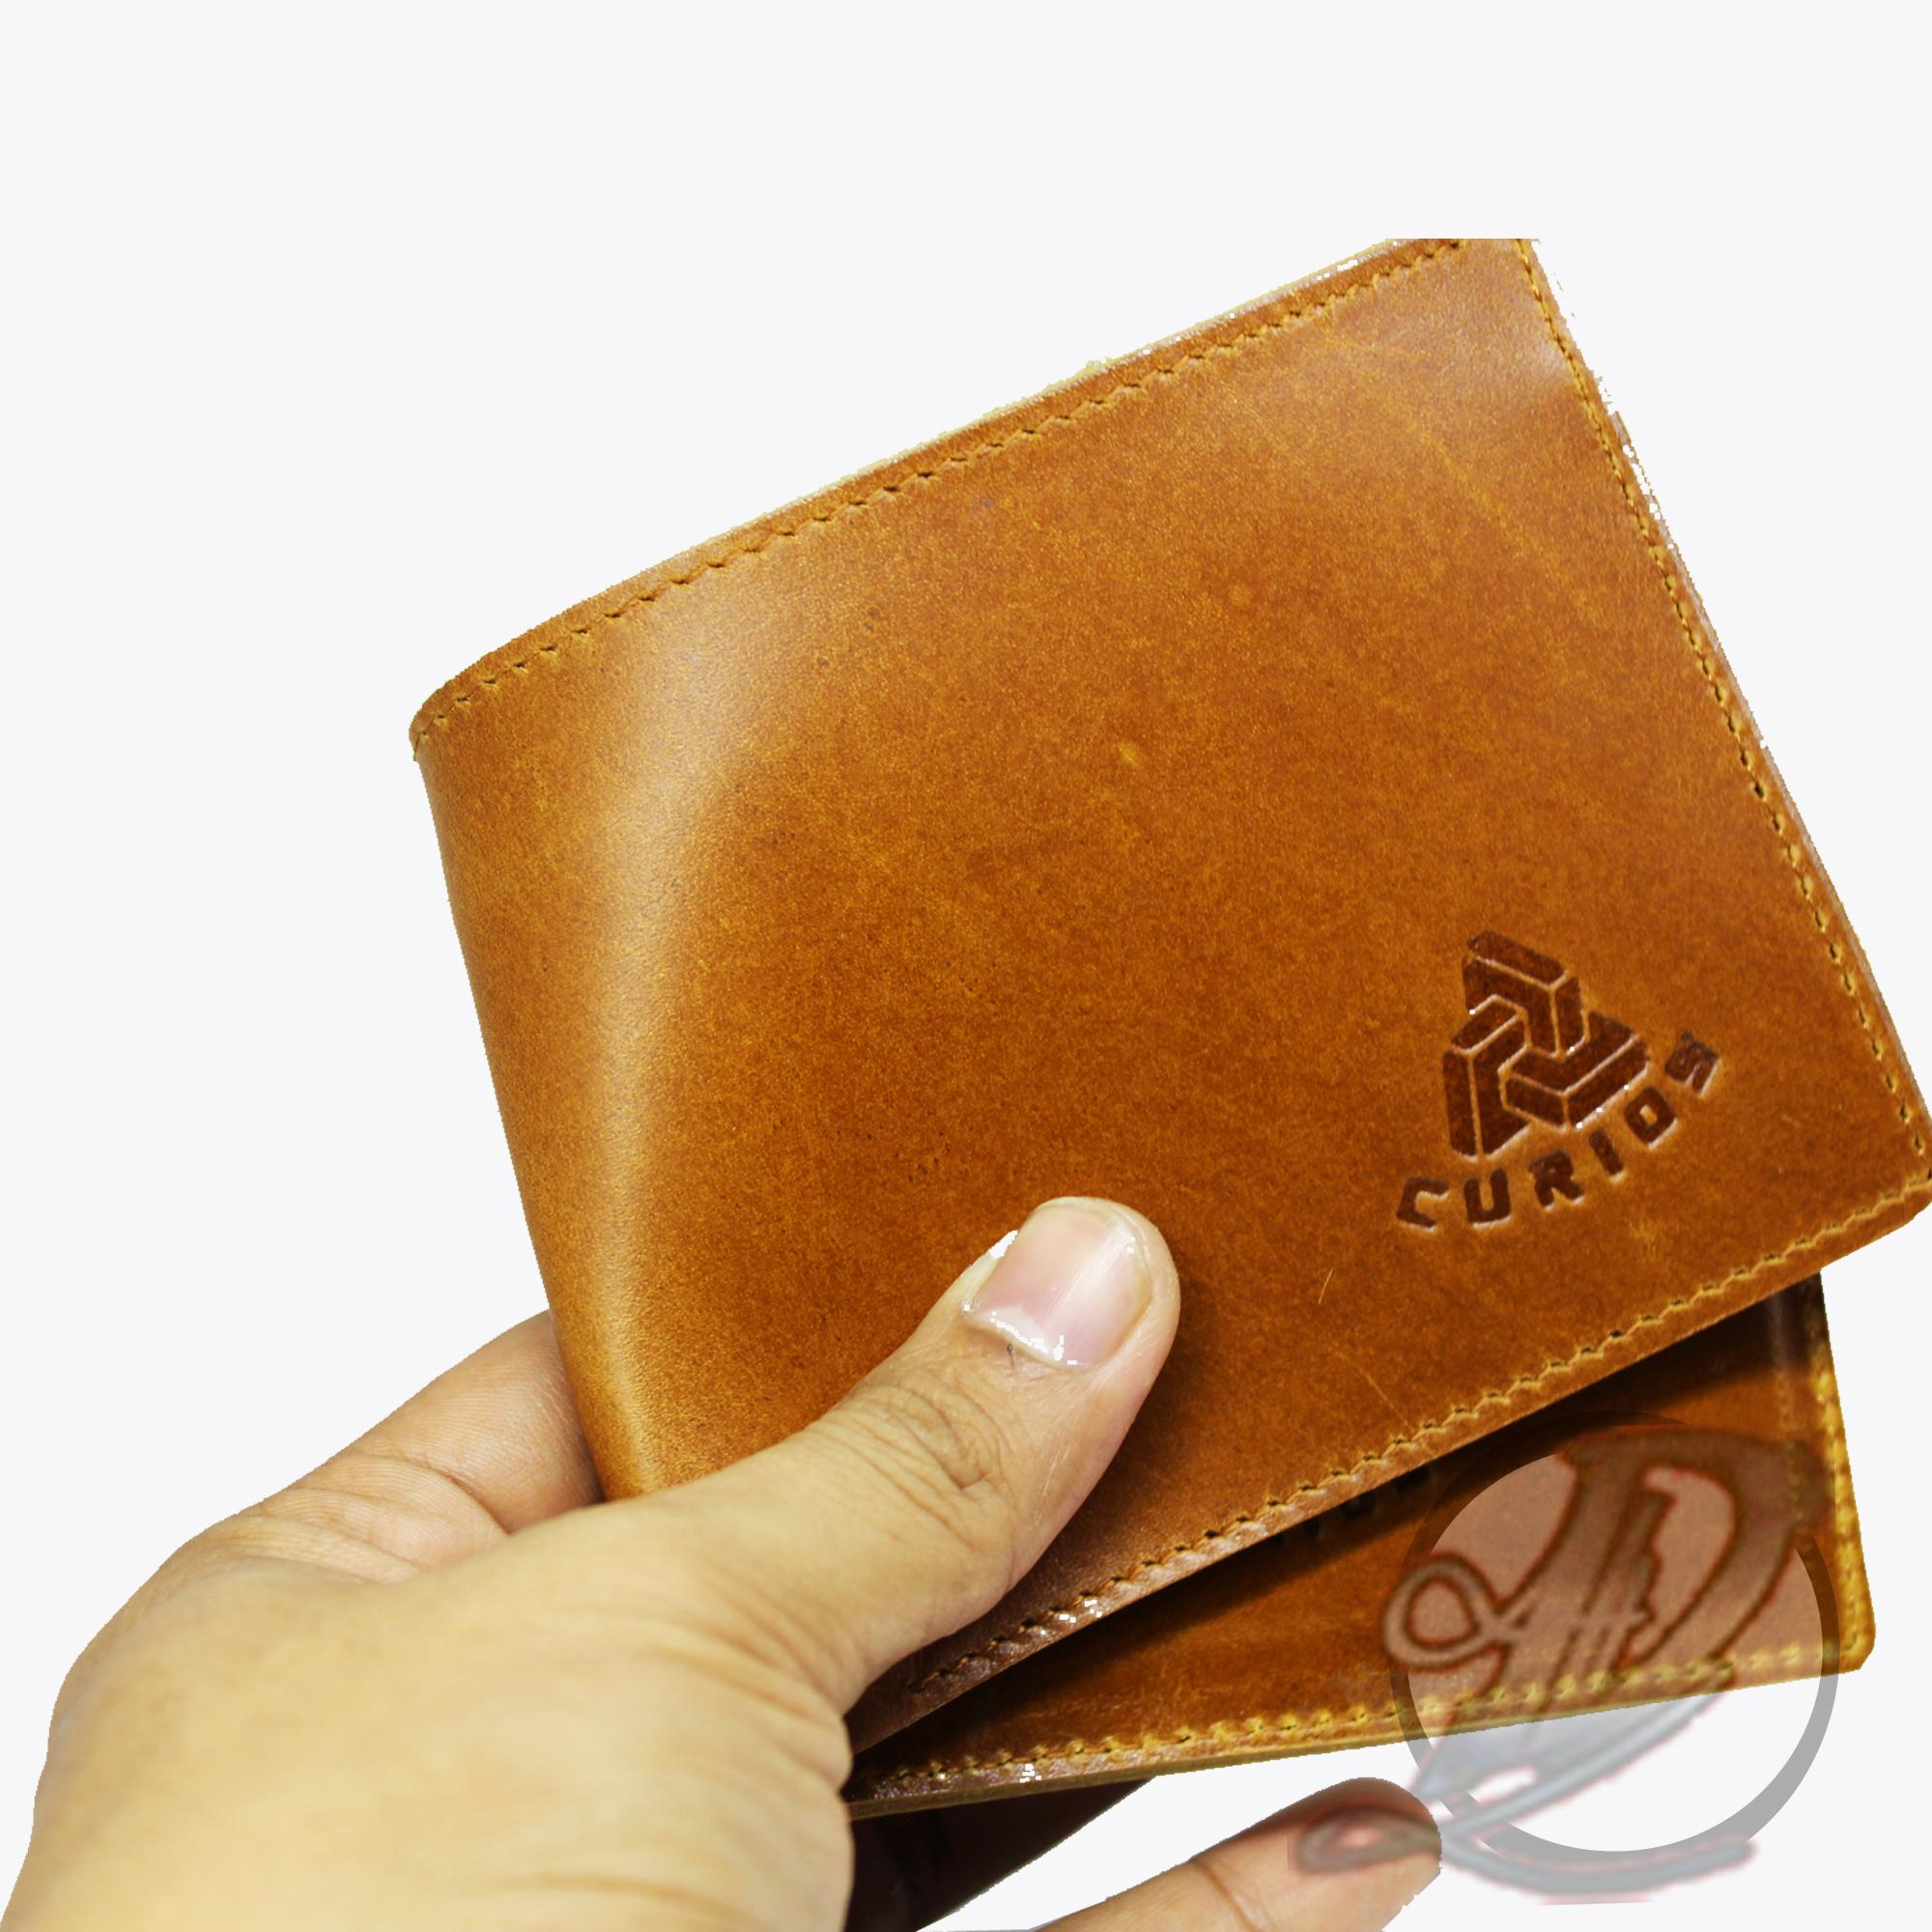 Dream Dompet Pria Batam Branded Kulit Model Terbaru PU Synthethic Leather  CURIOS Men Wallet Dompet Pria 1889363bd3